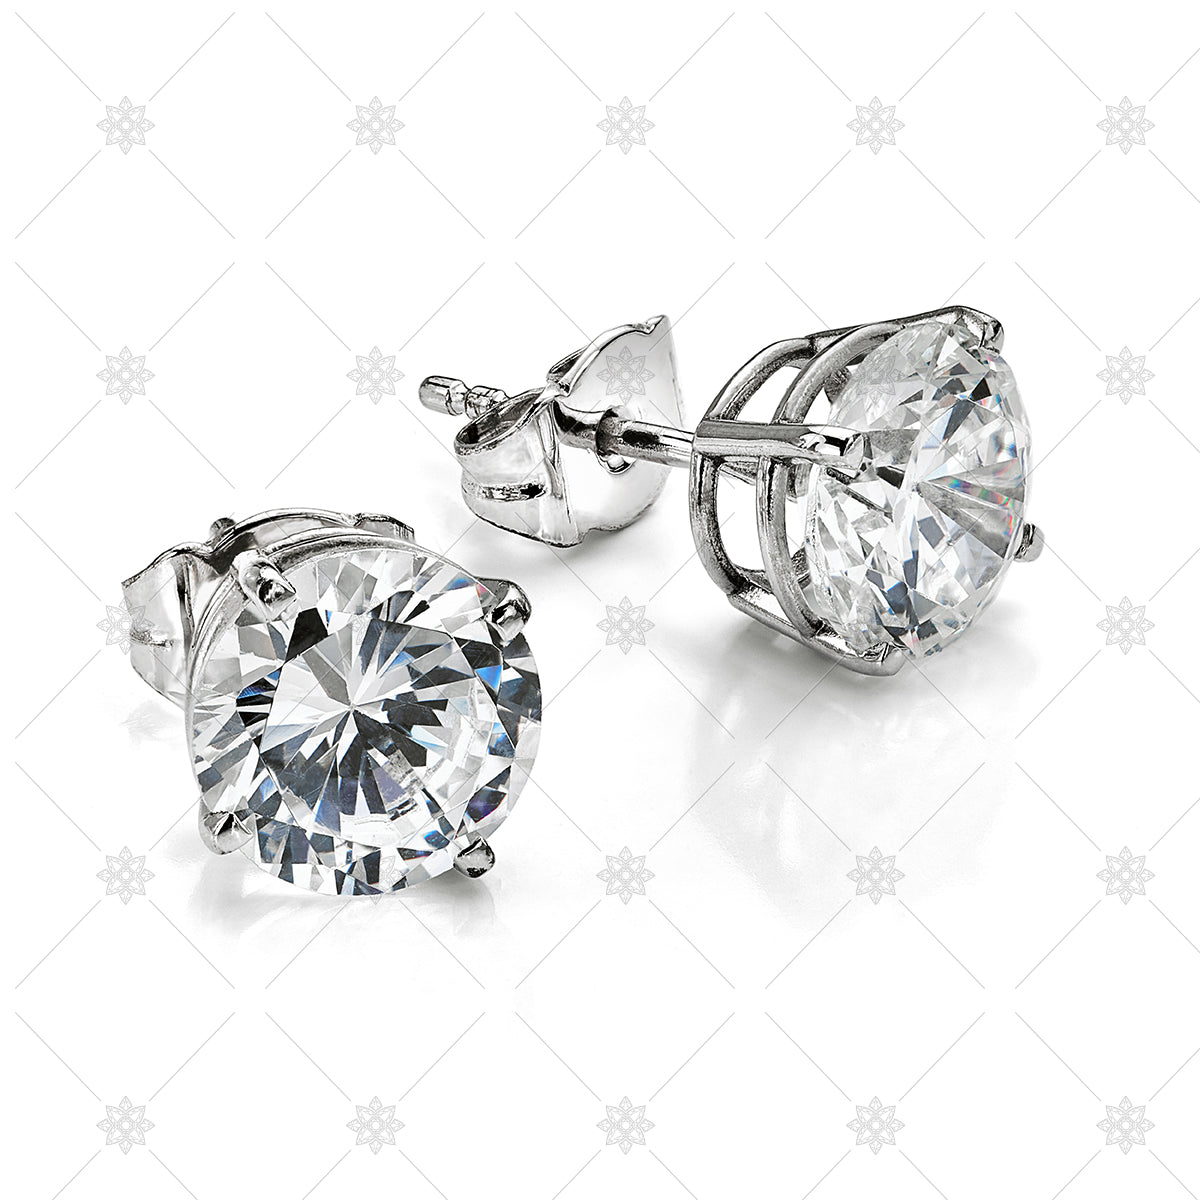 Solitaire earrings in white gold